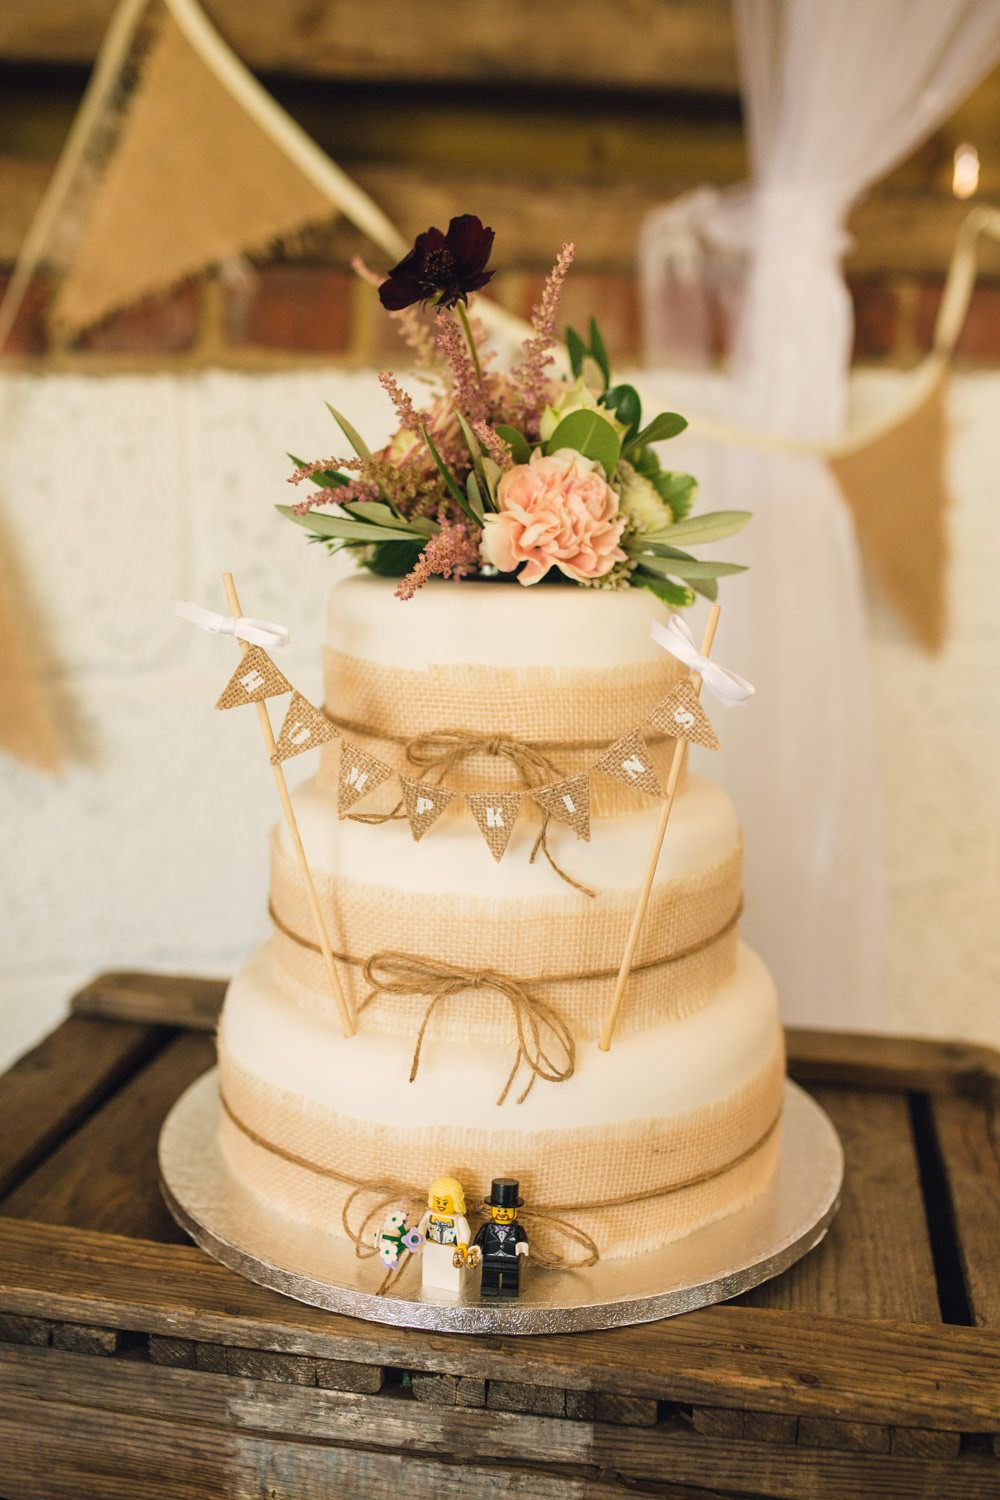 Homemade Wedding Cake with Hessian Ribbon Photography by